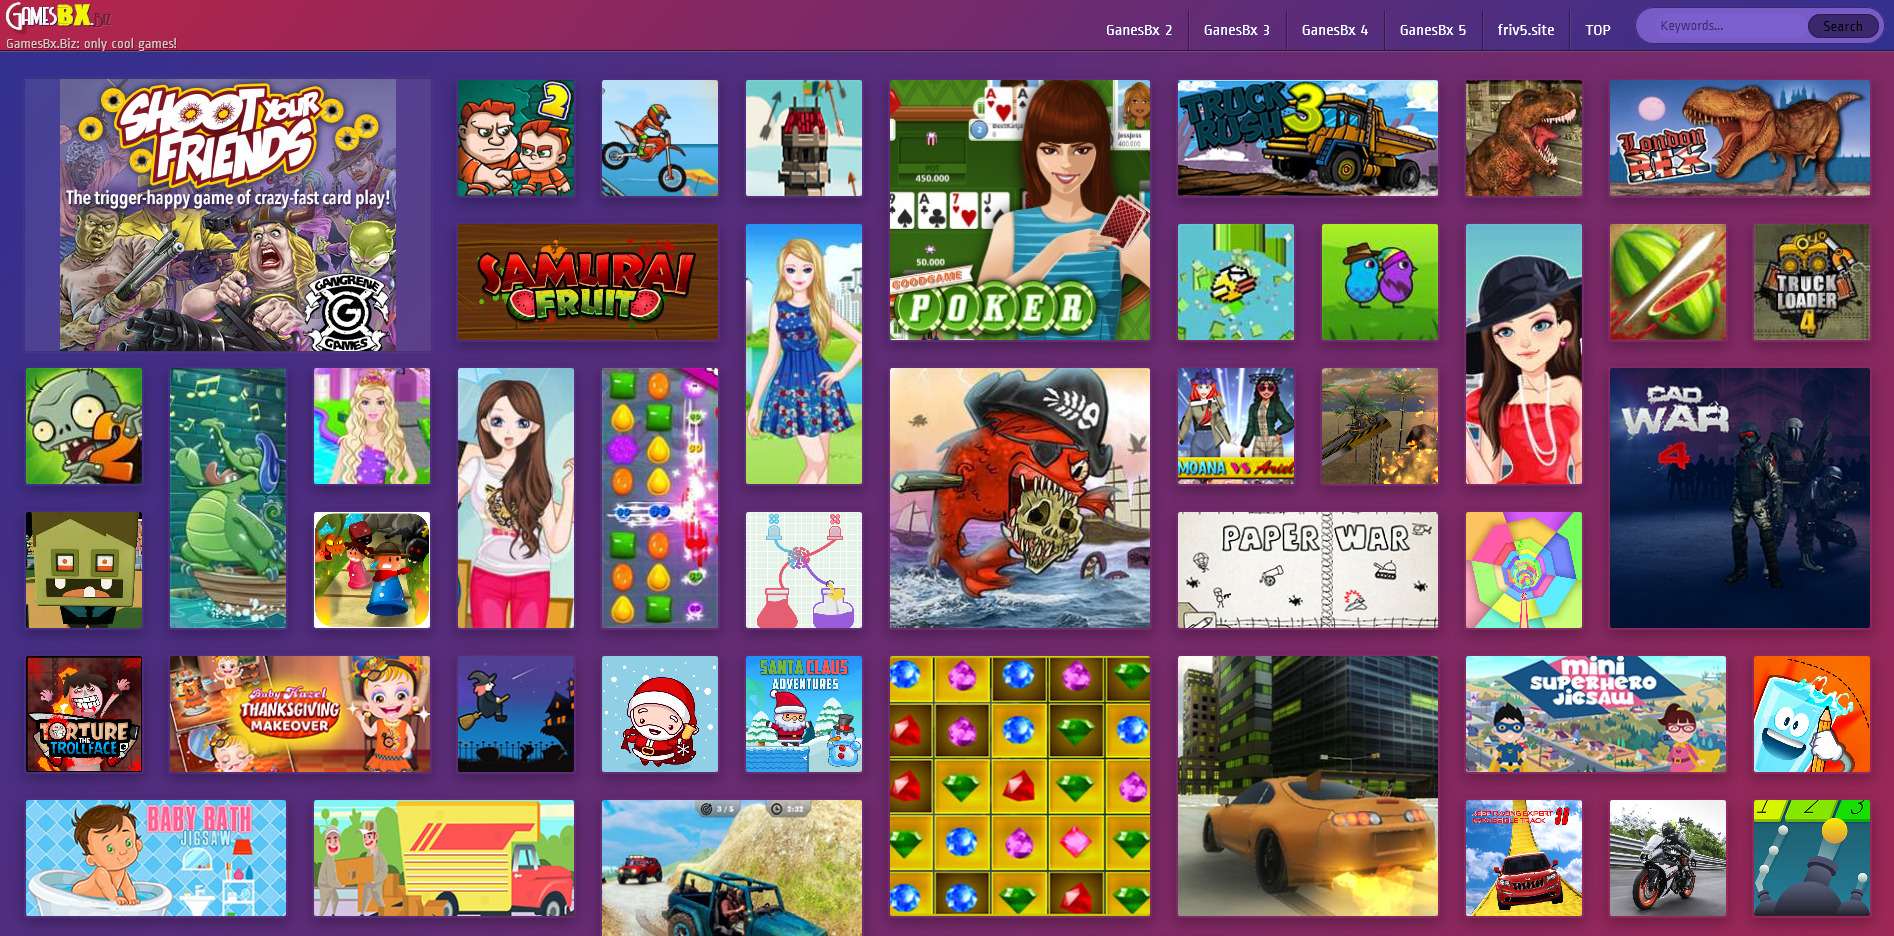 The source code of the mini game website on the browser is composed of flash games and html5 games